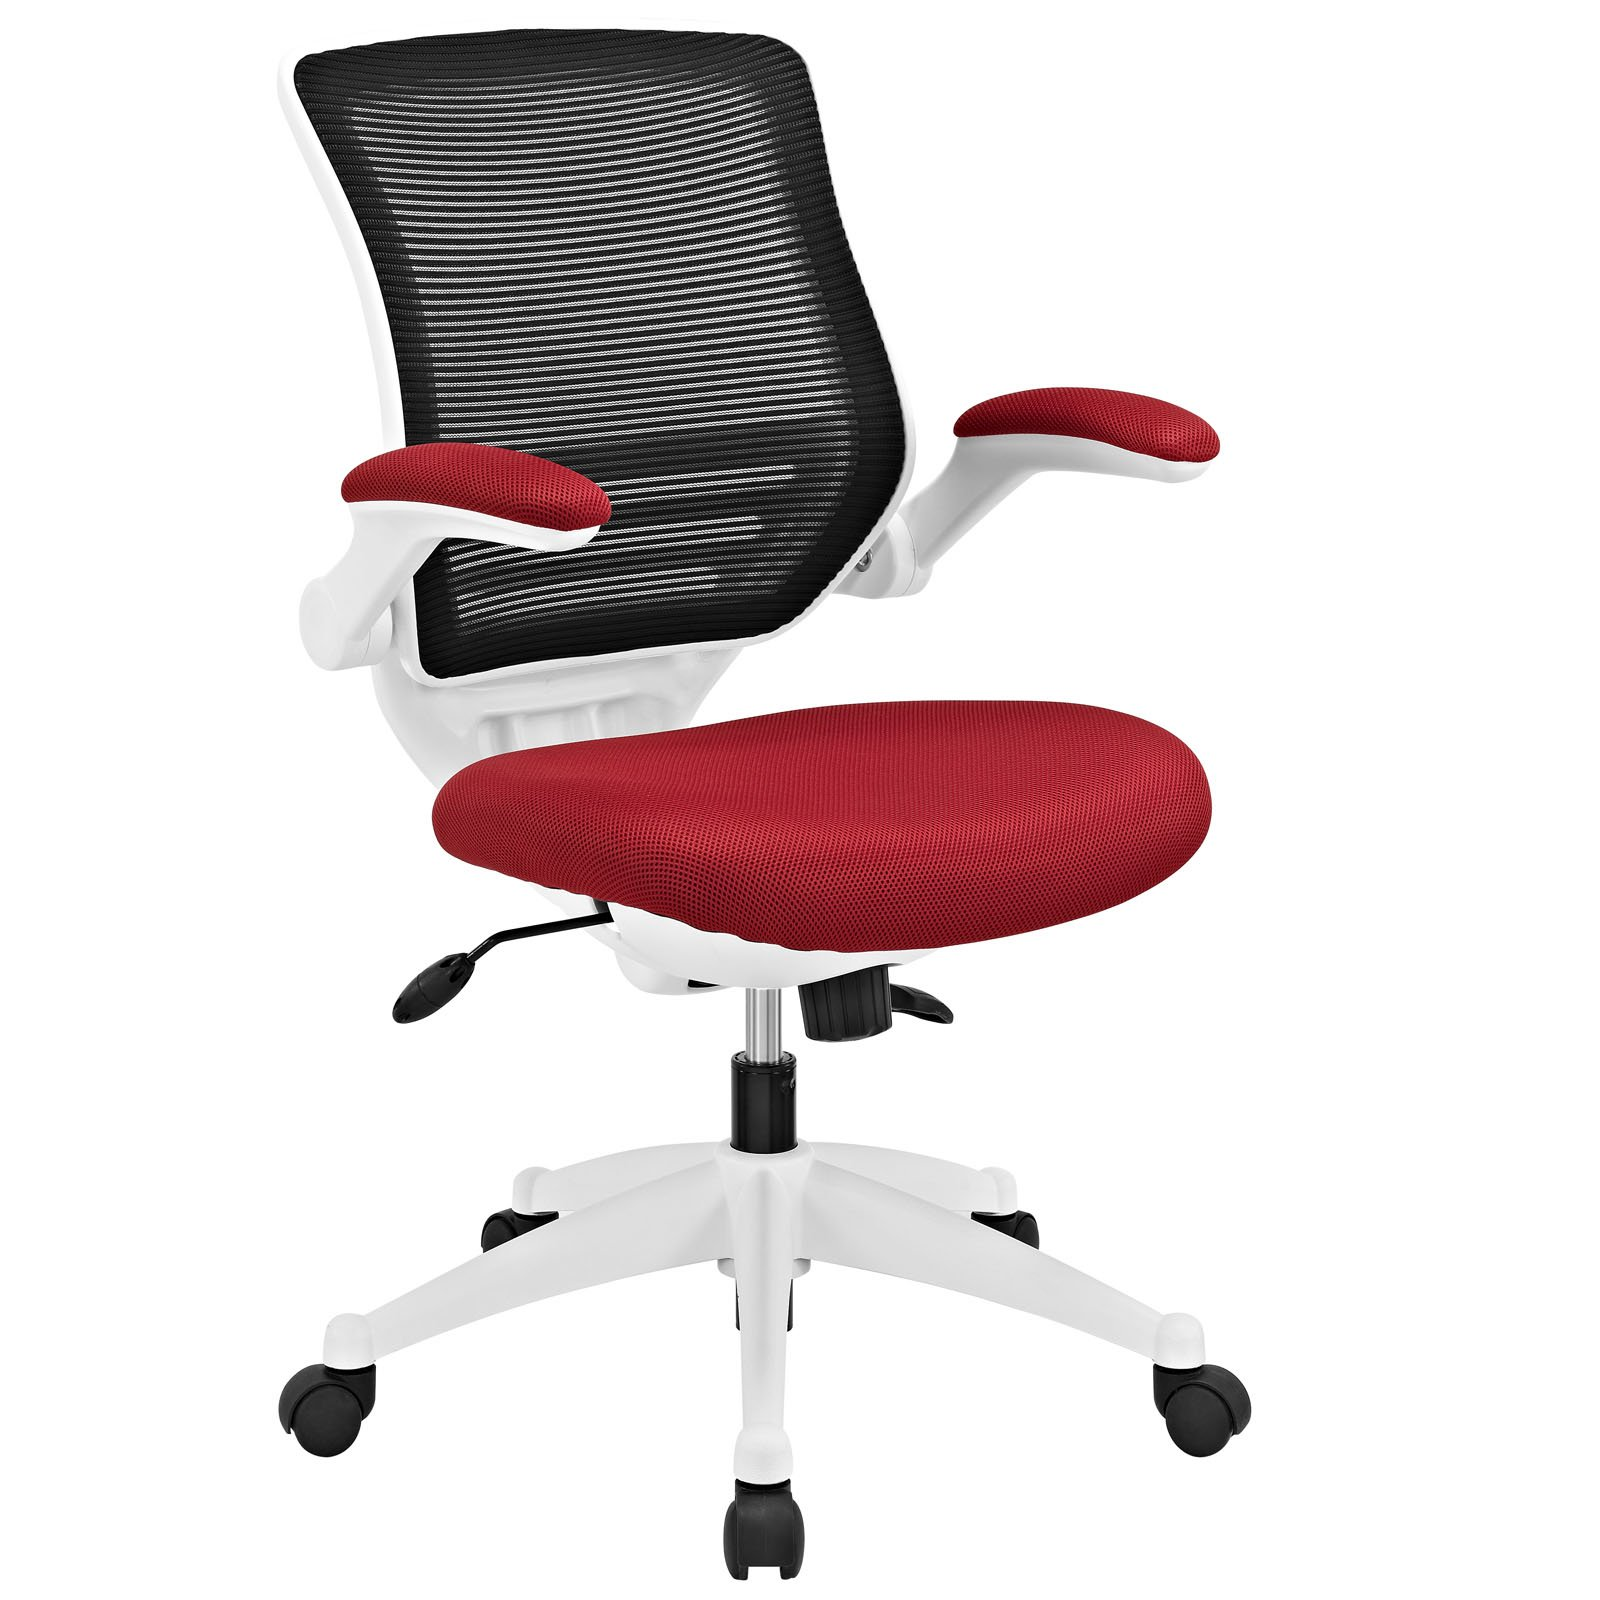 Modway Edge Mesh Back and Red Mesh Seat Office Chair With White Base And Flip-Up Arms - Ergonomic Desk And Computer Chair